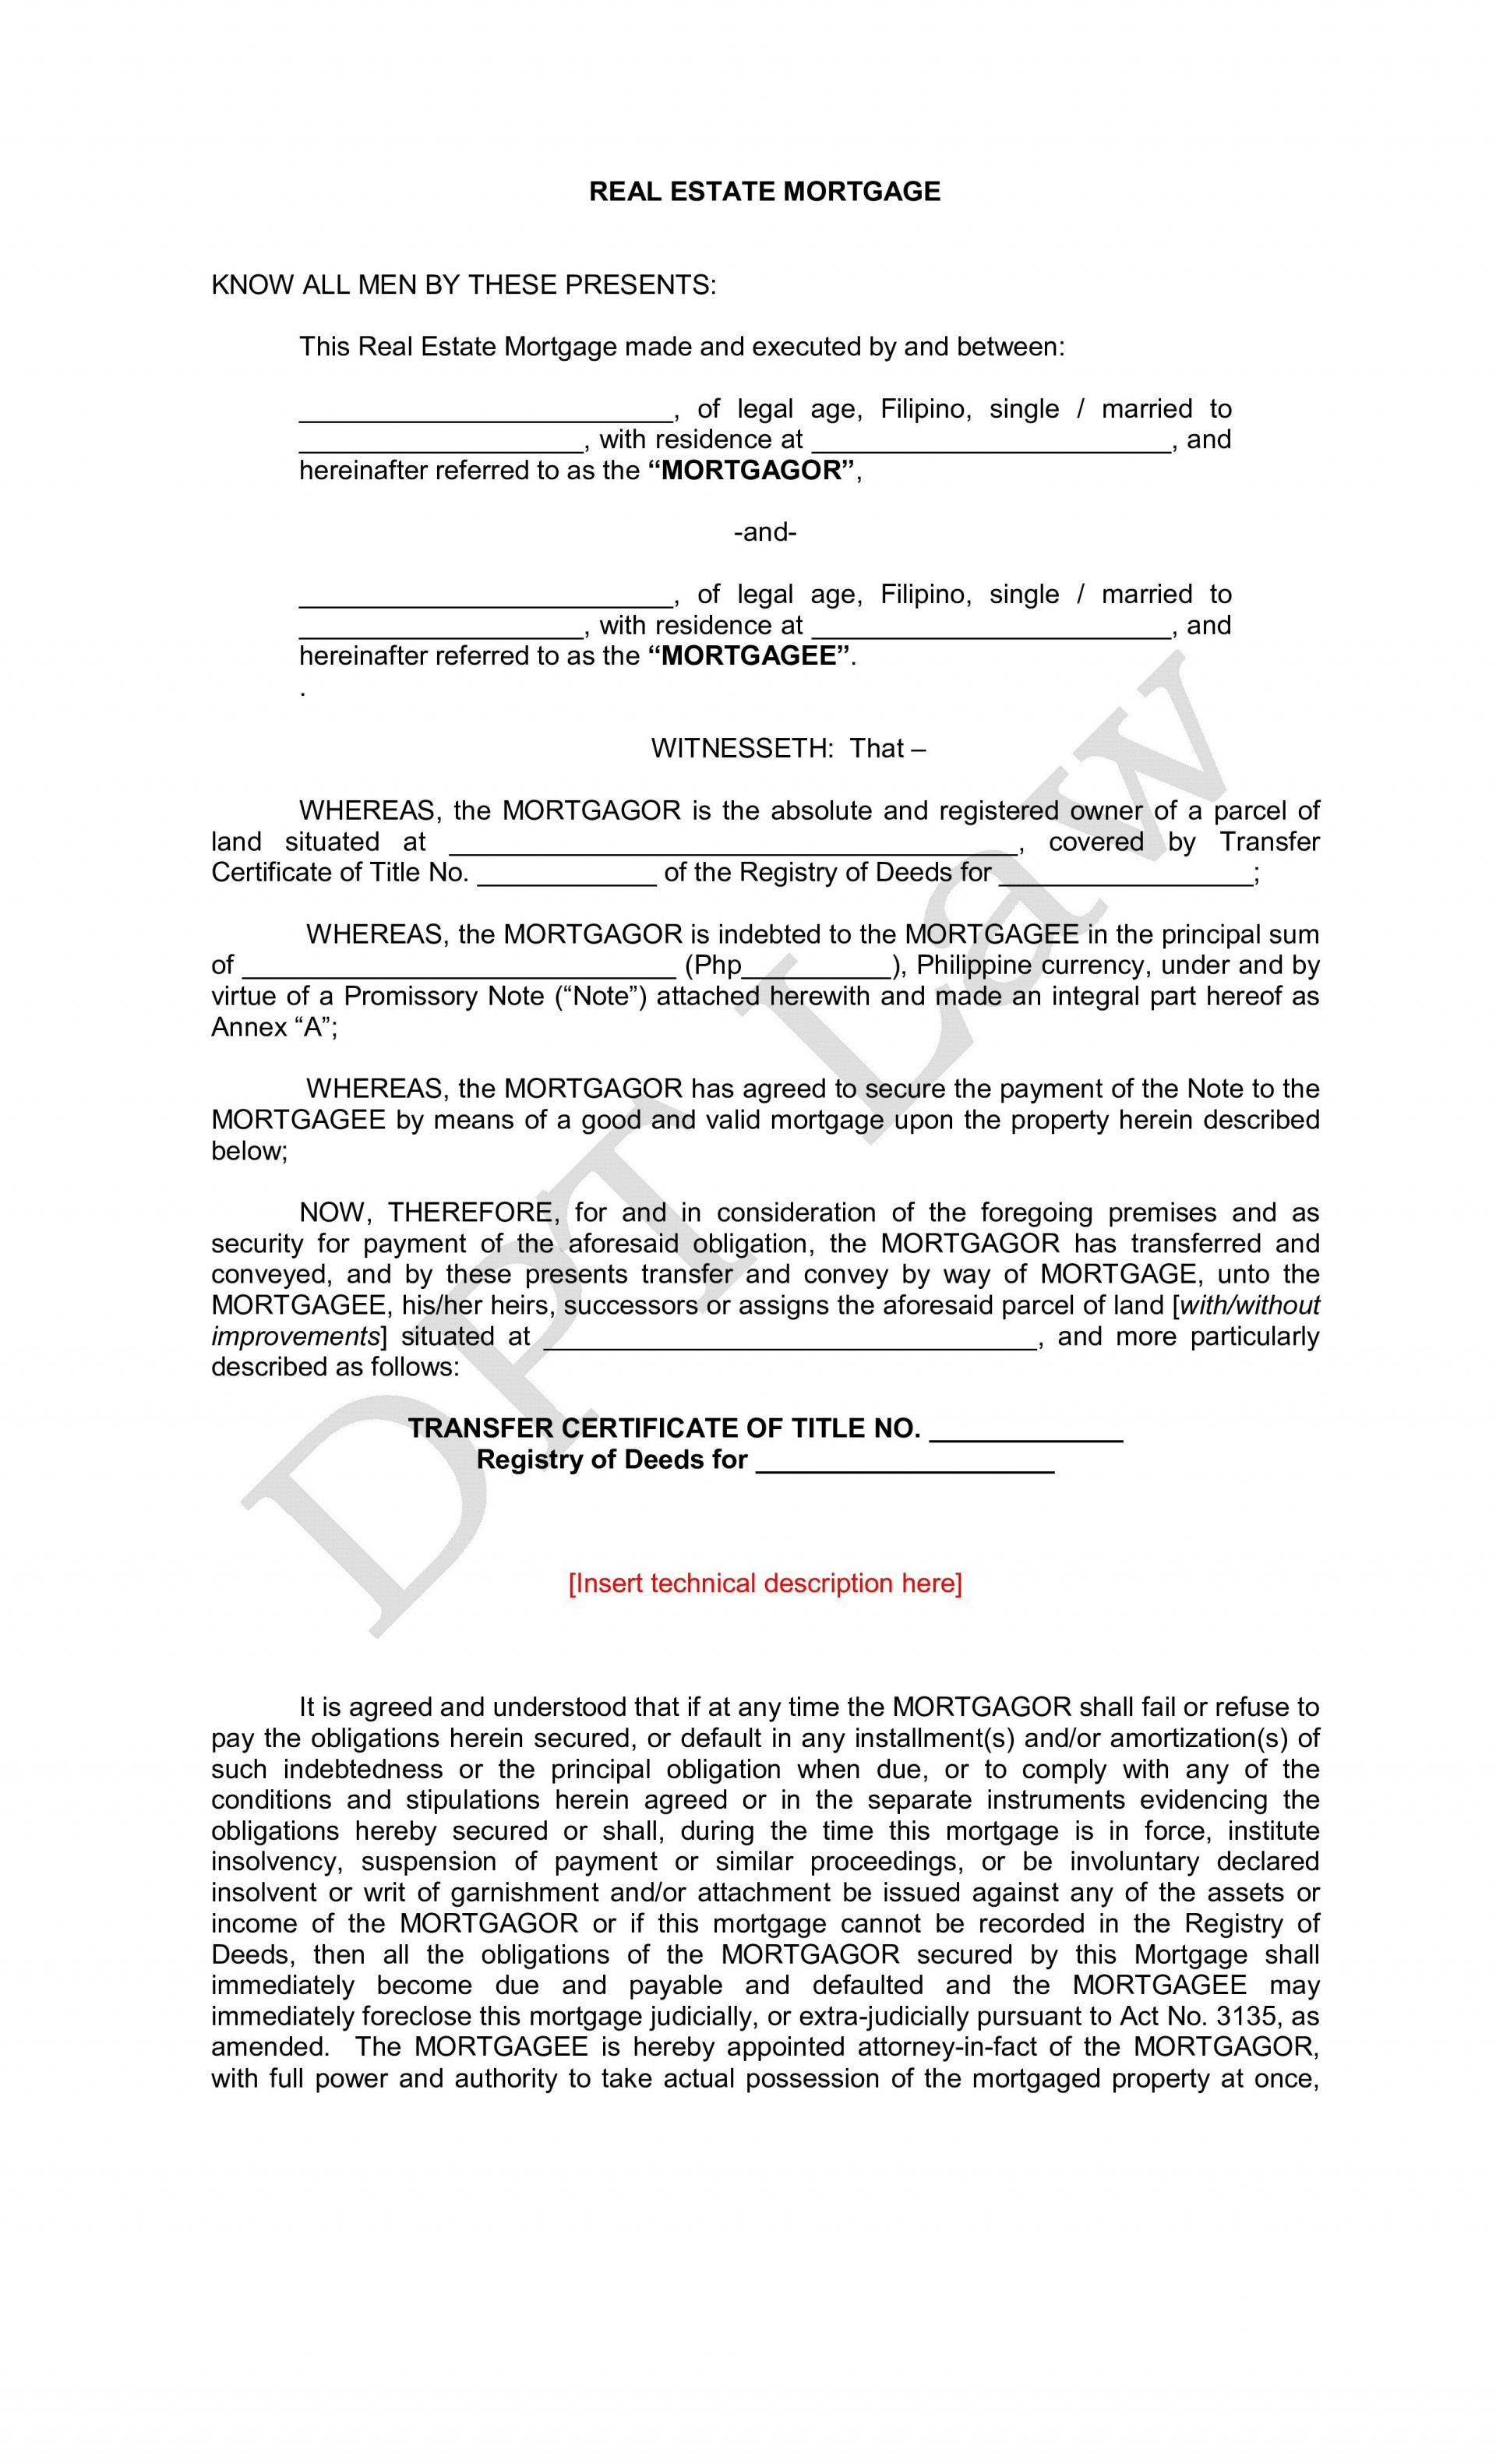 000 Beautiful Real Estate Promissory Note Template Picture  Pdf The Commission Approved Earnest Money Form1920